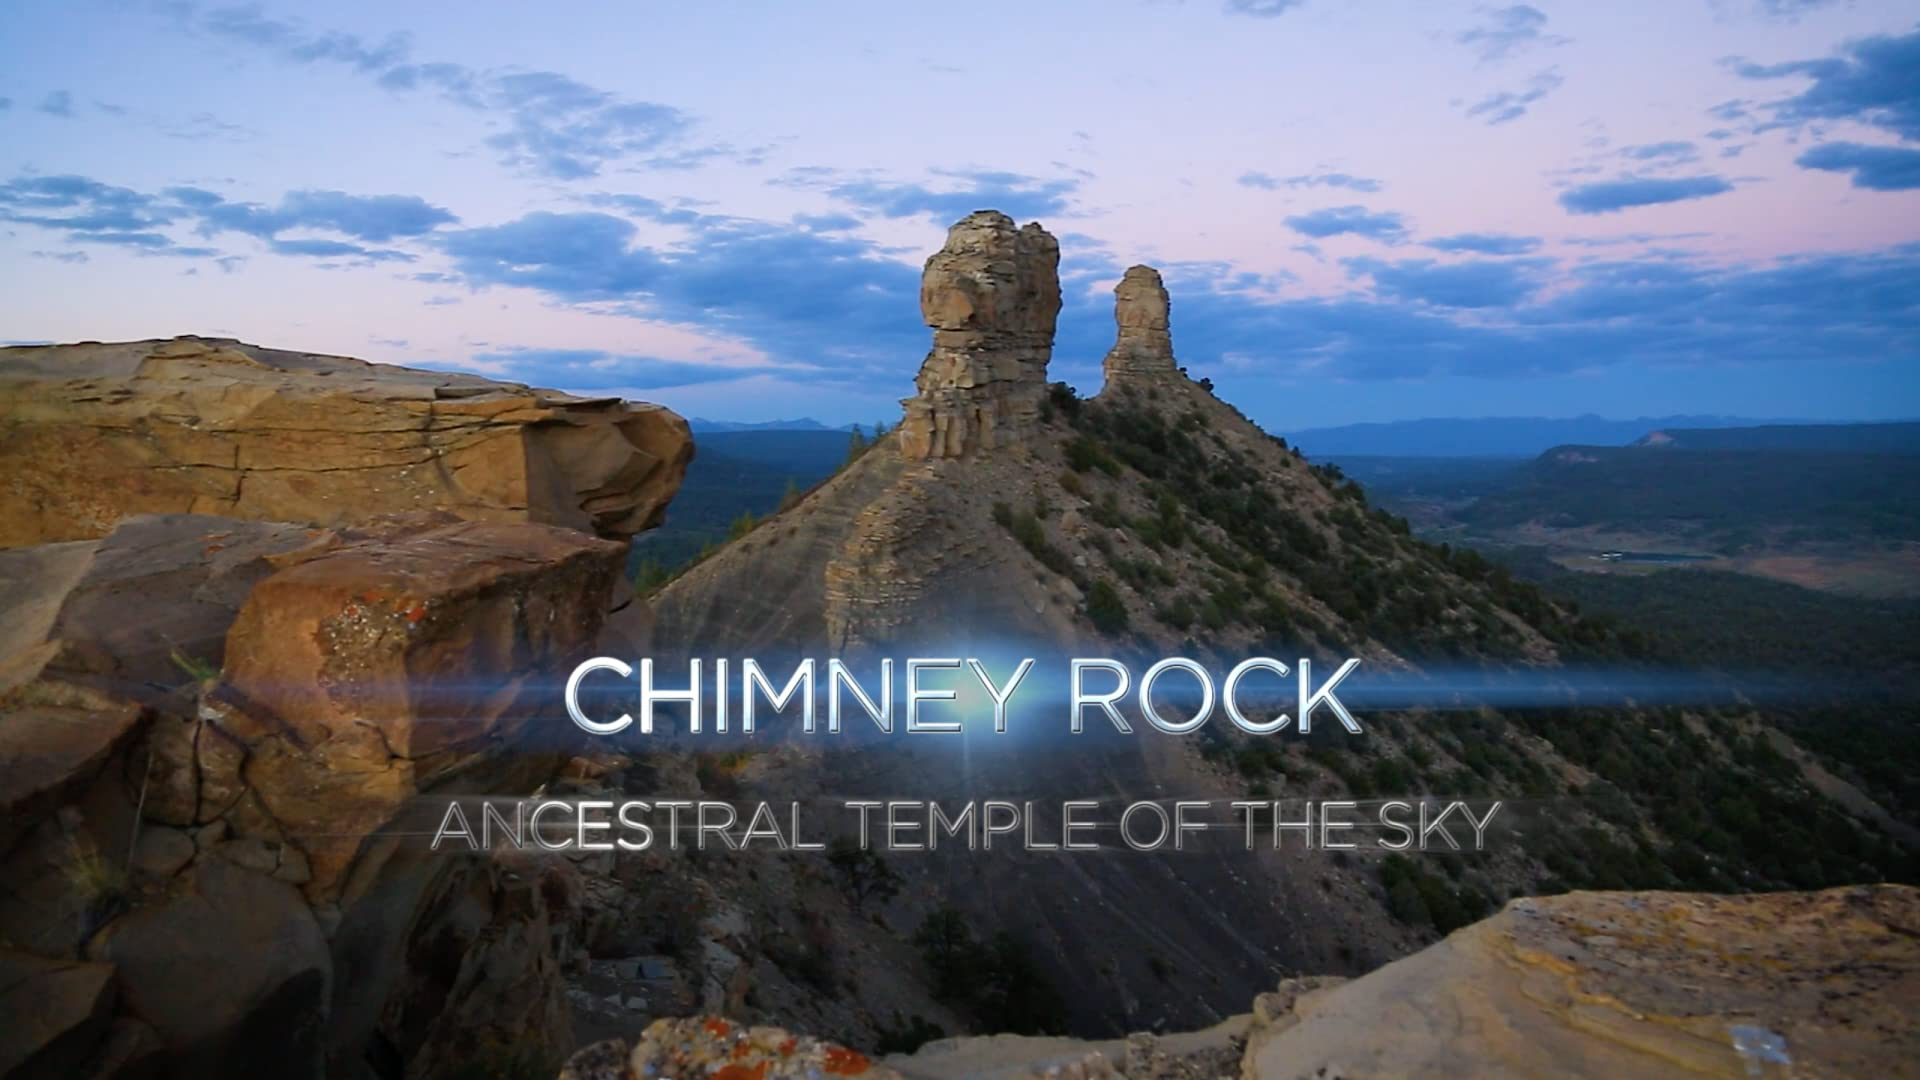 Chimney Rock - Ancestral Temple of the Sky